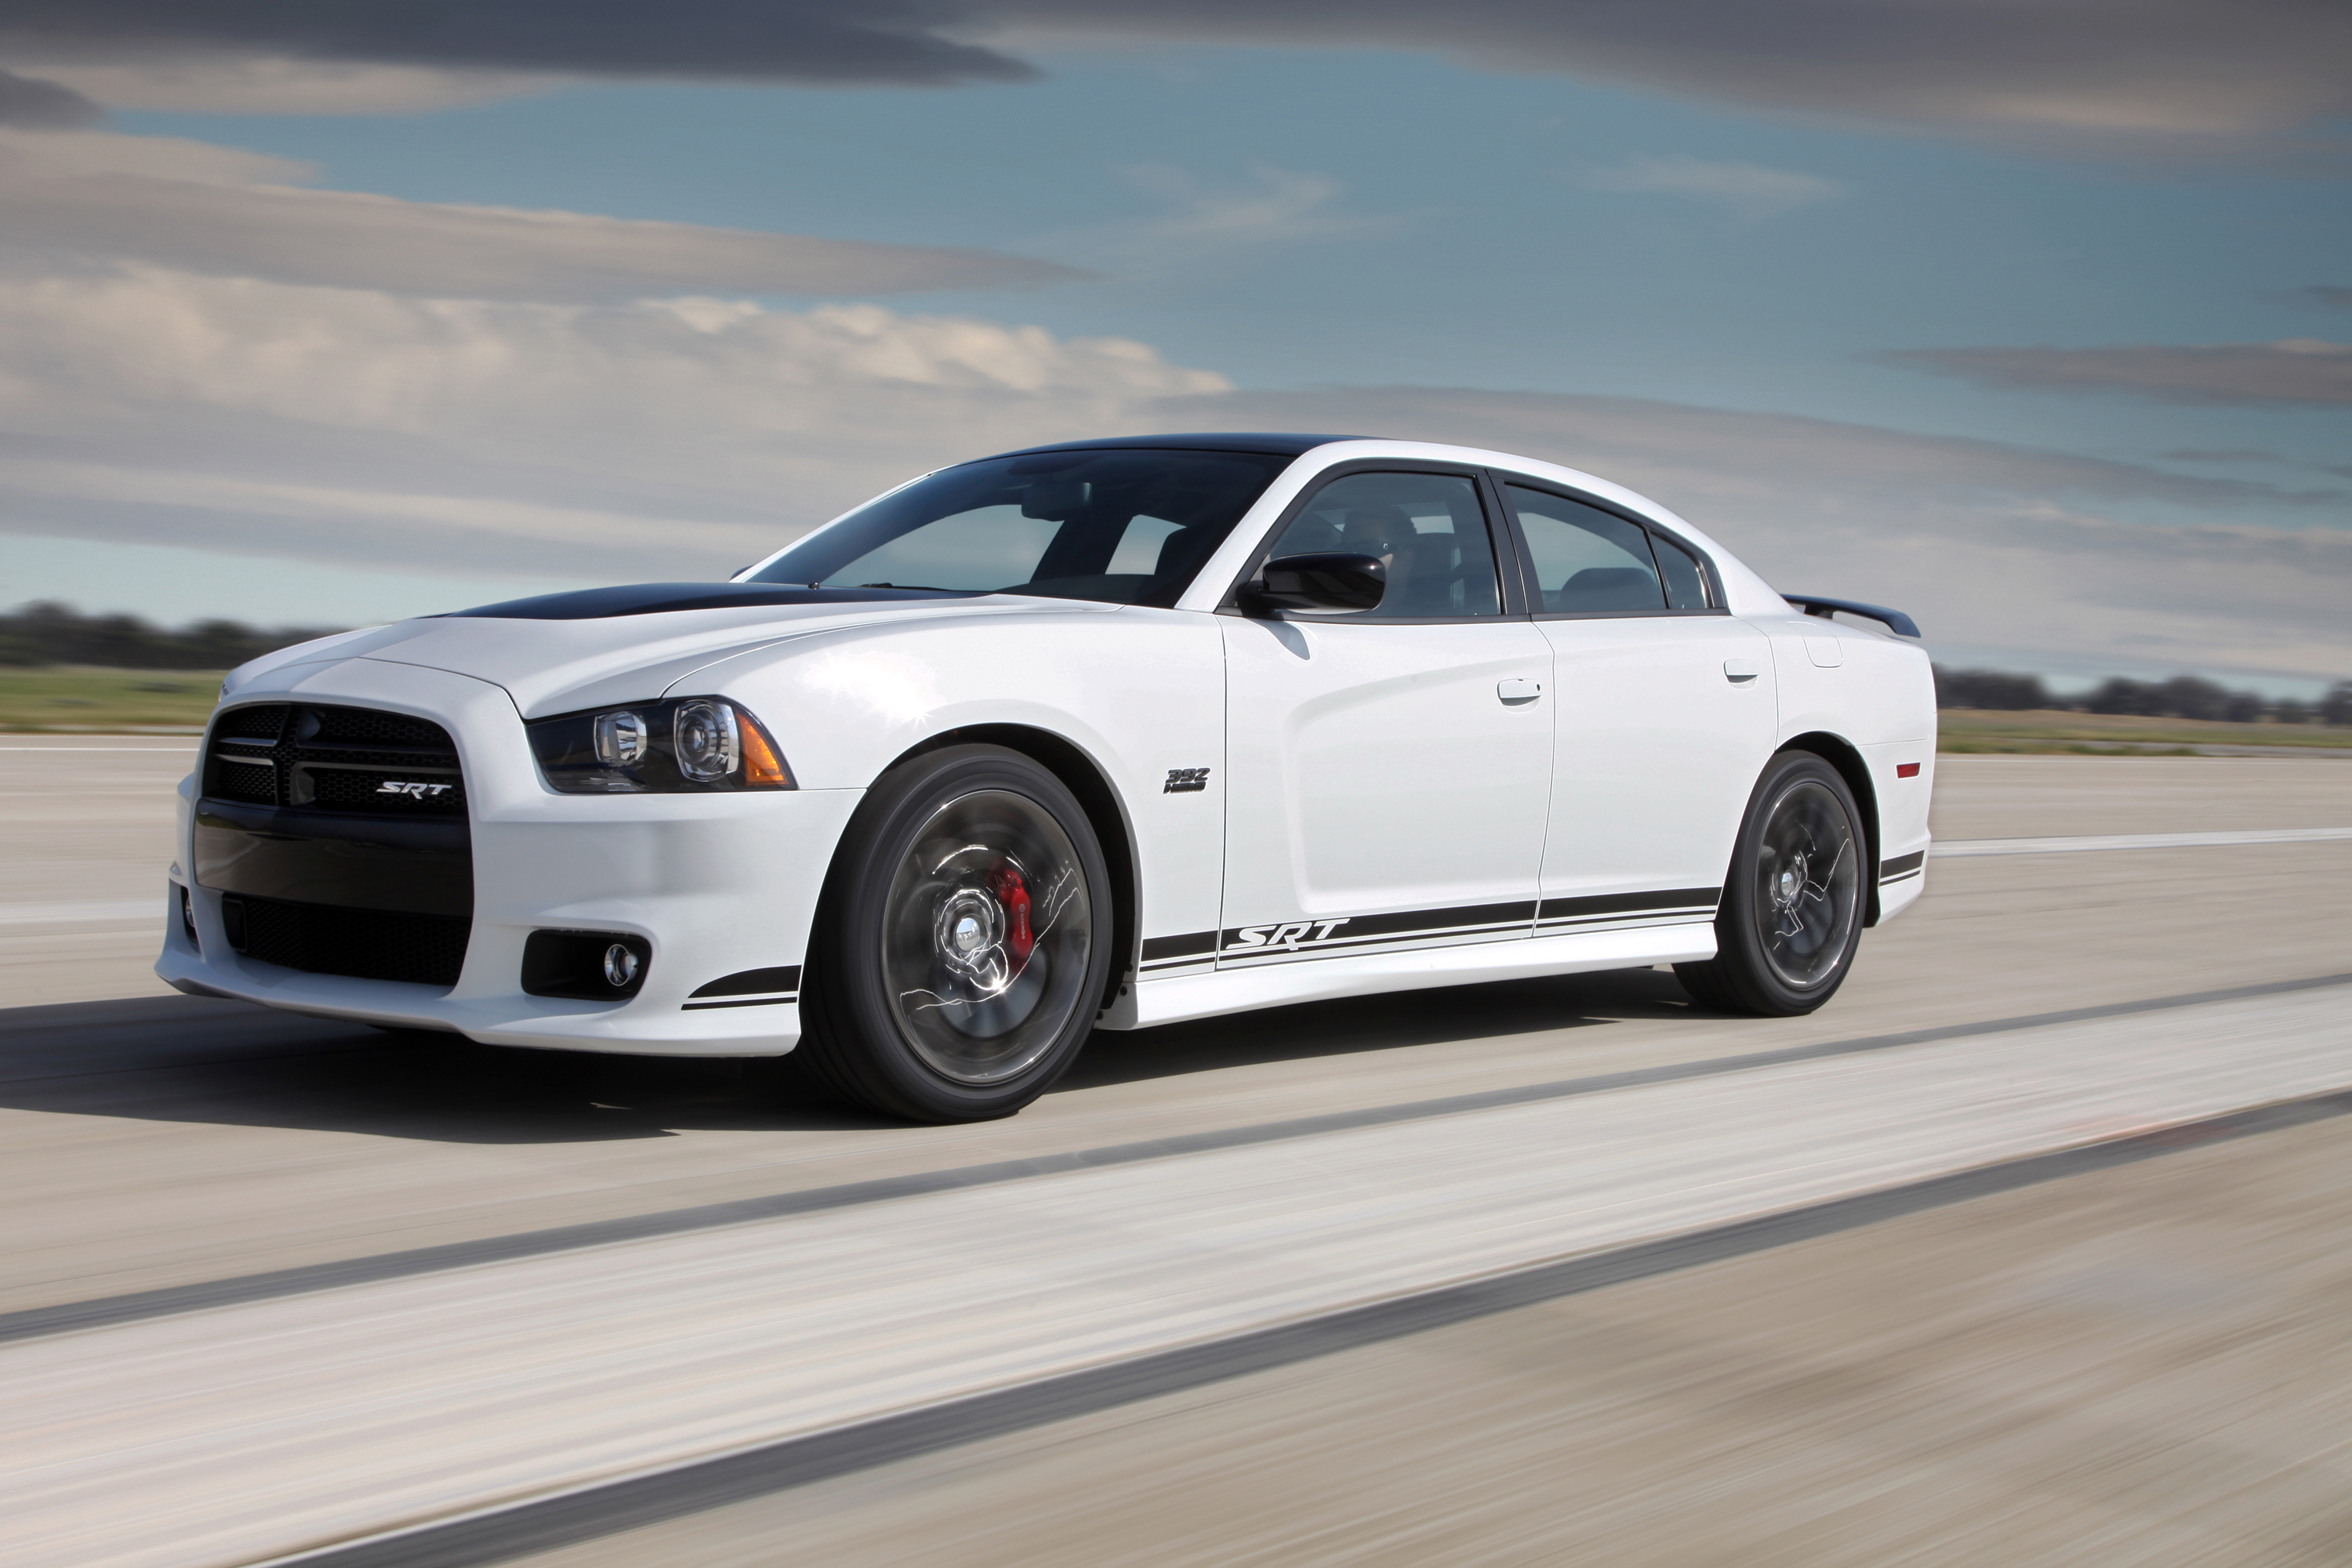 2013 Dodge Charger Hellcat For Sale >> 2013 Dodge Charger Srt 392 Top Speed